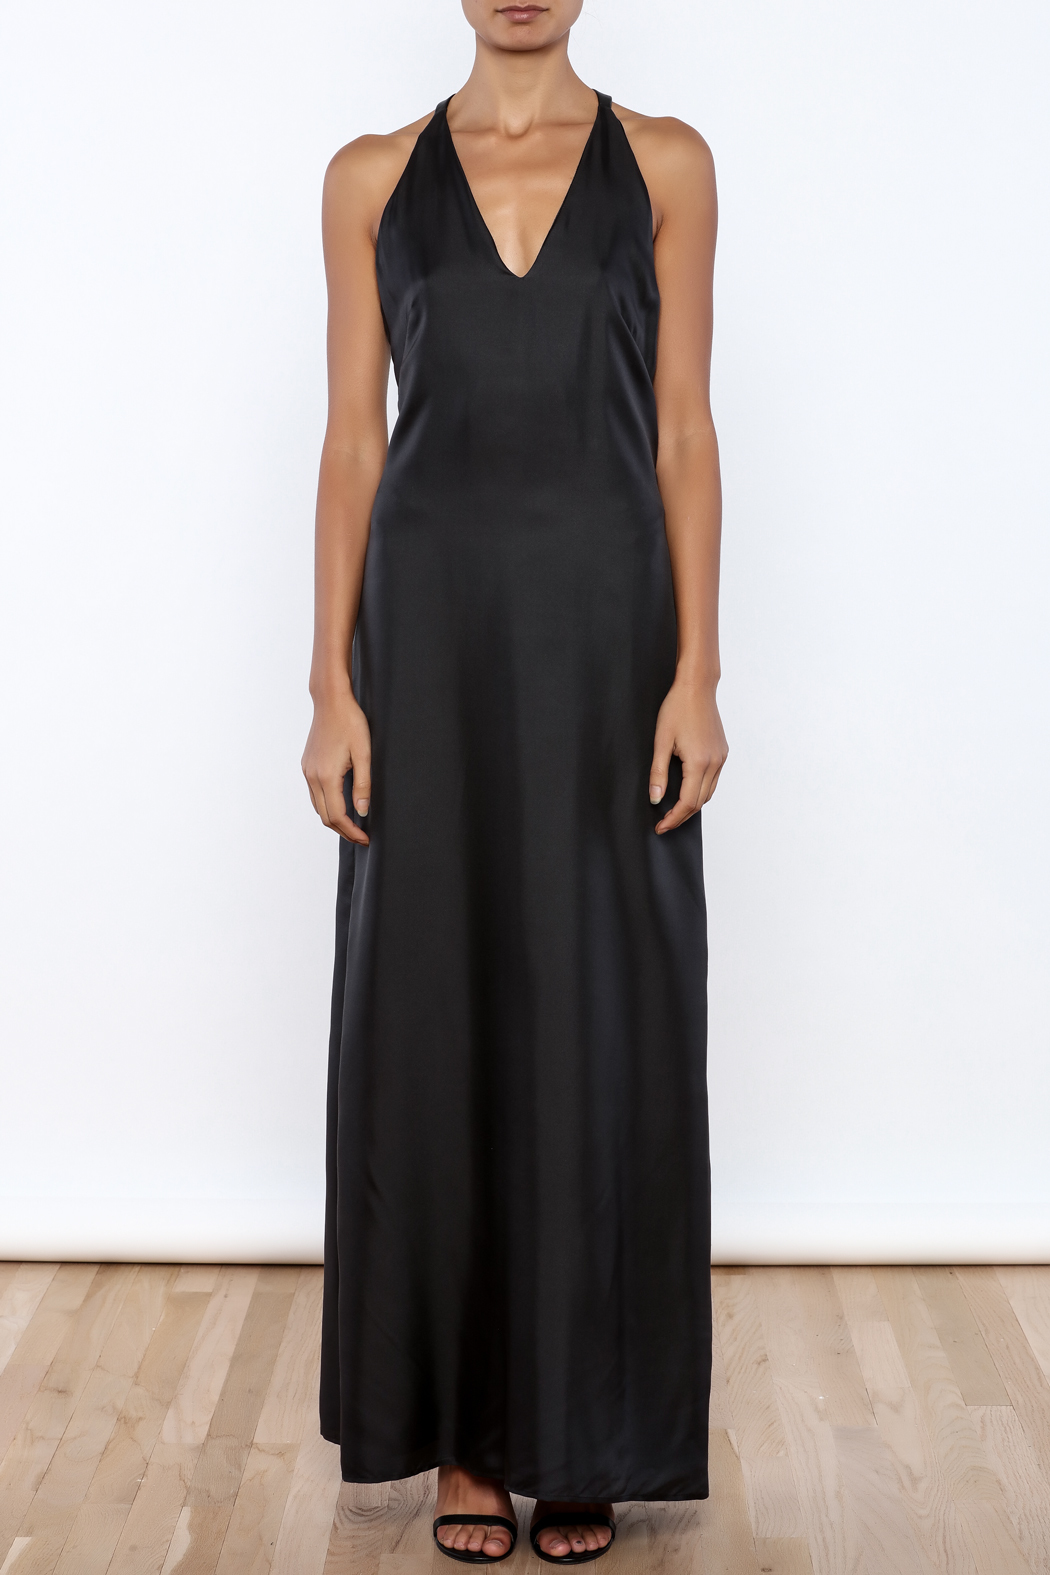 KAS New York Marisol Dress - Front Cropped Image